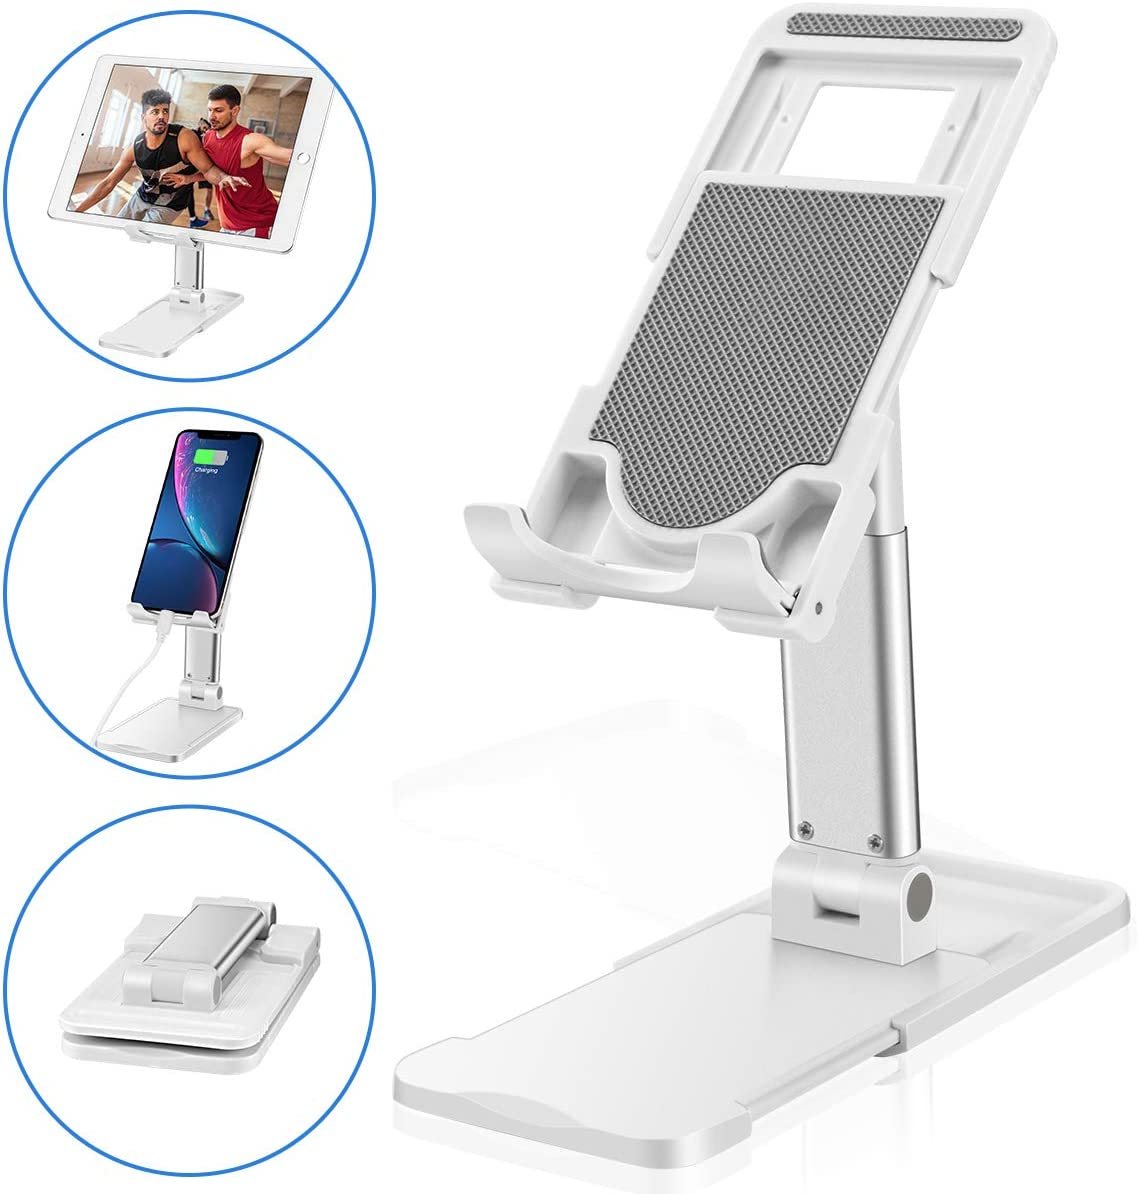 Cell Phone Stand for Desk,Adjustable Desktop Phone Holder Cradle/Desk Tablet Stand,Phone Dock;Cradle Compatible with iPhone11 8 7 Pro Xs XR Galaxy Samsung S10 S9 S8 Mobile Phone/iPad-2020 Newly